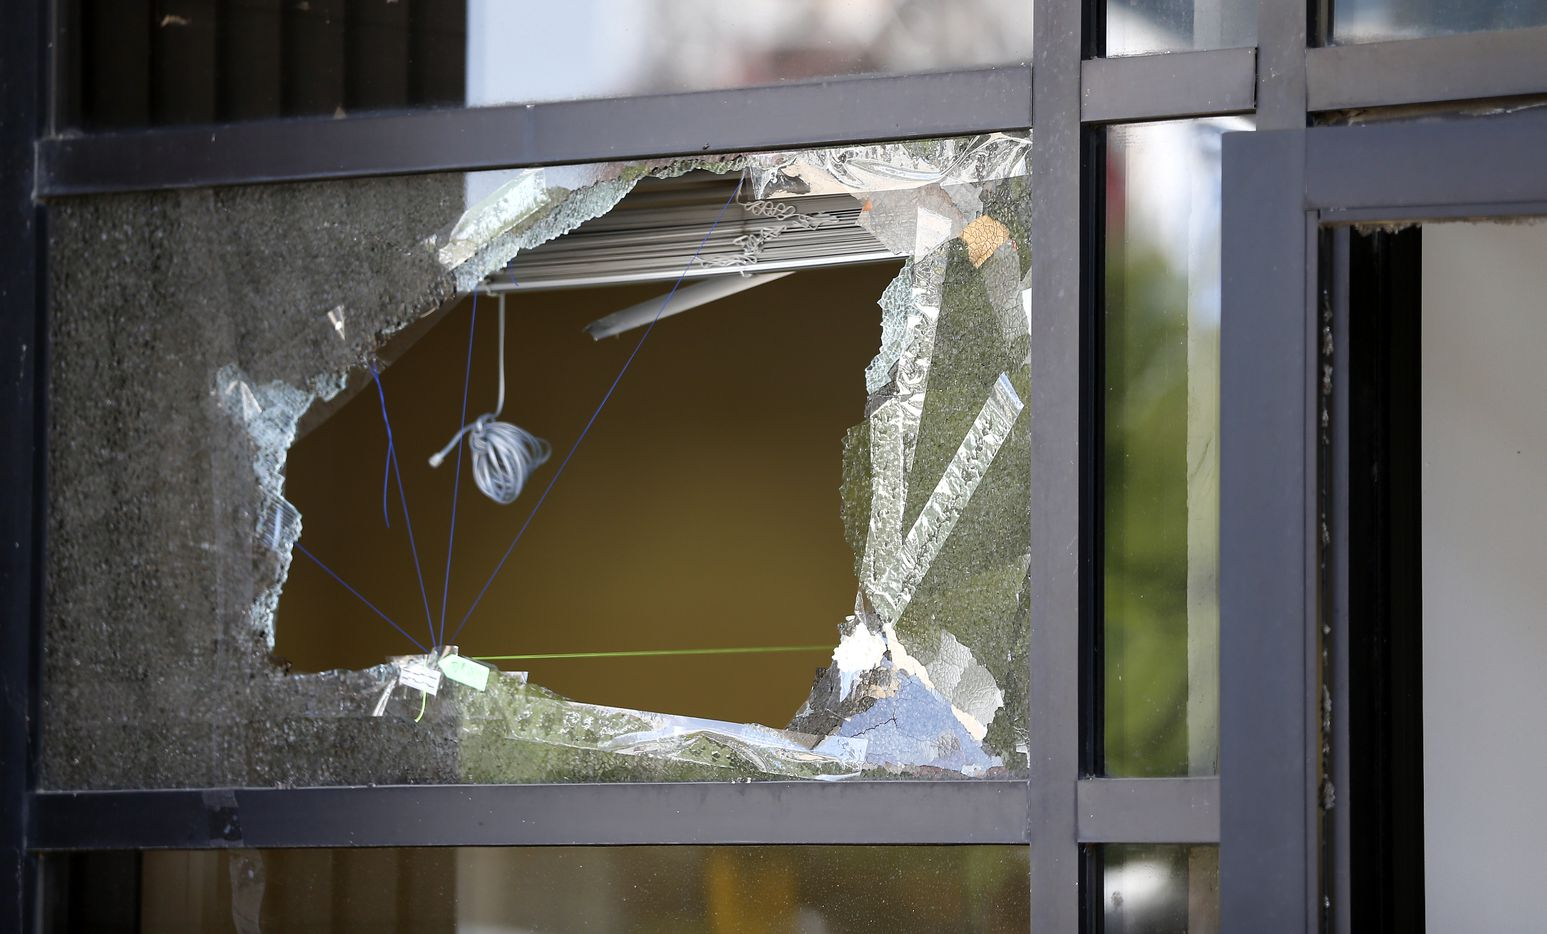 A window was shattered by gunfire at El Centro College.